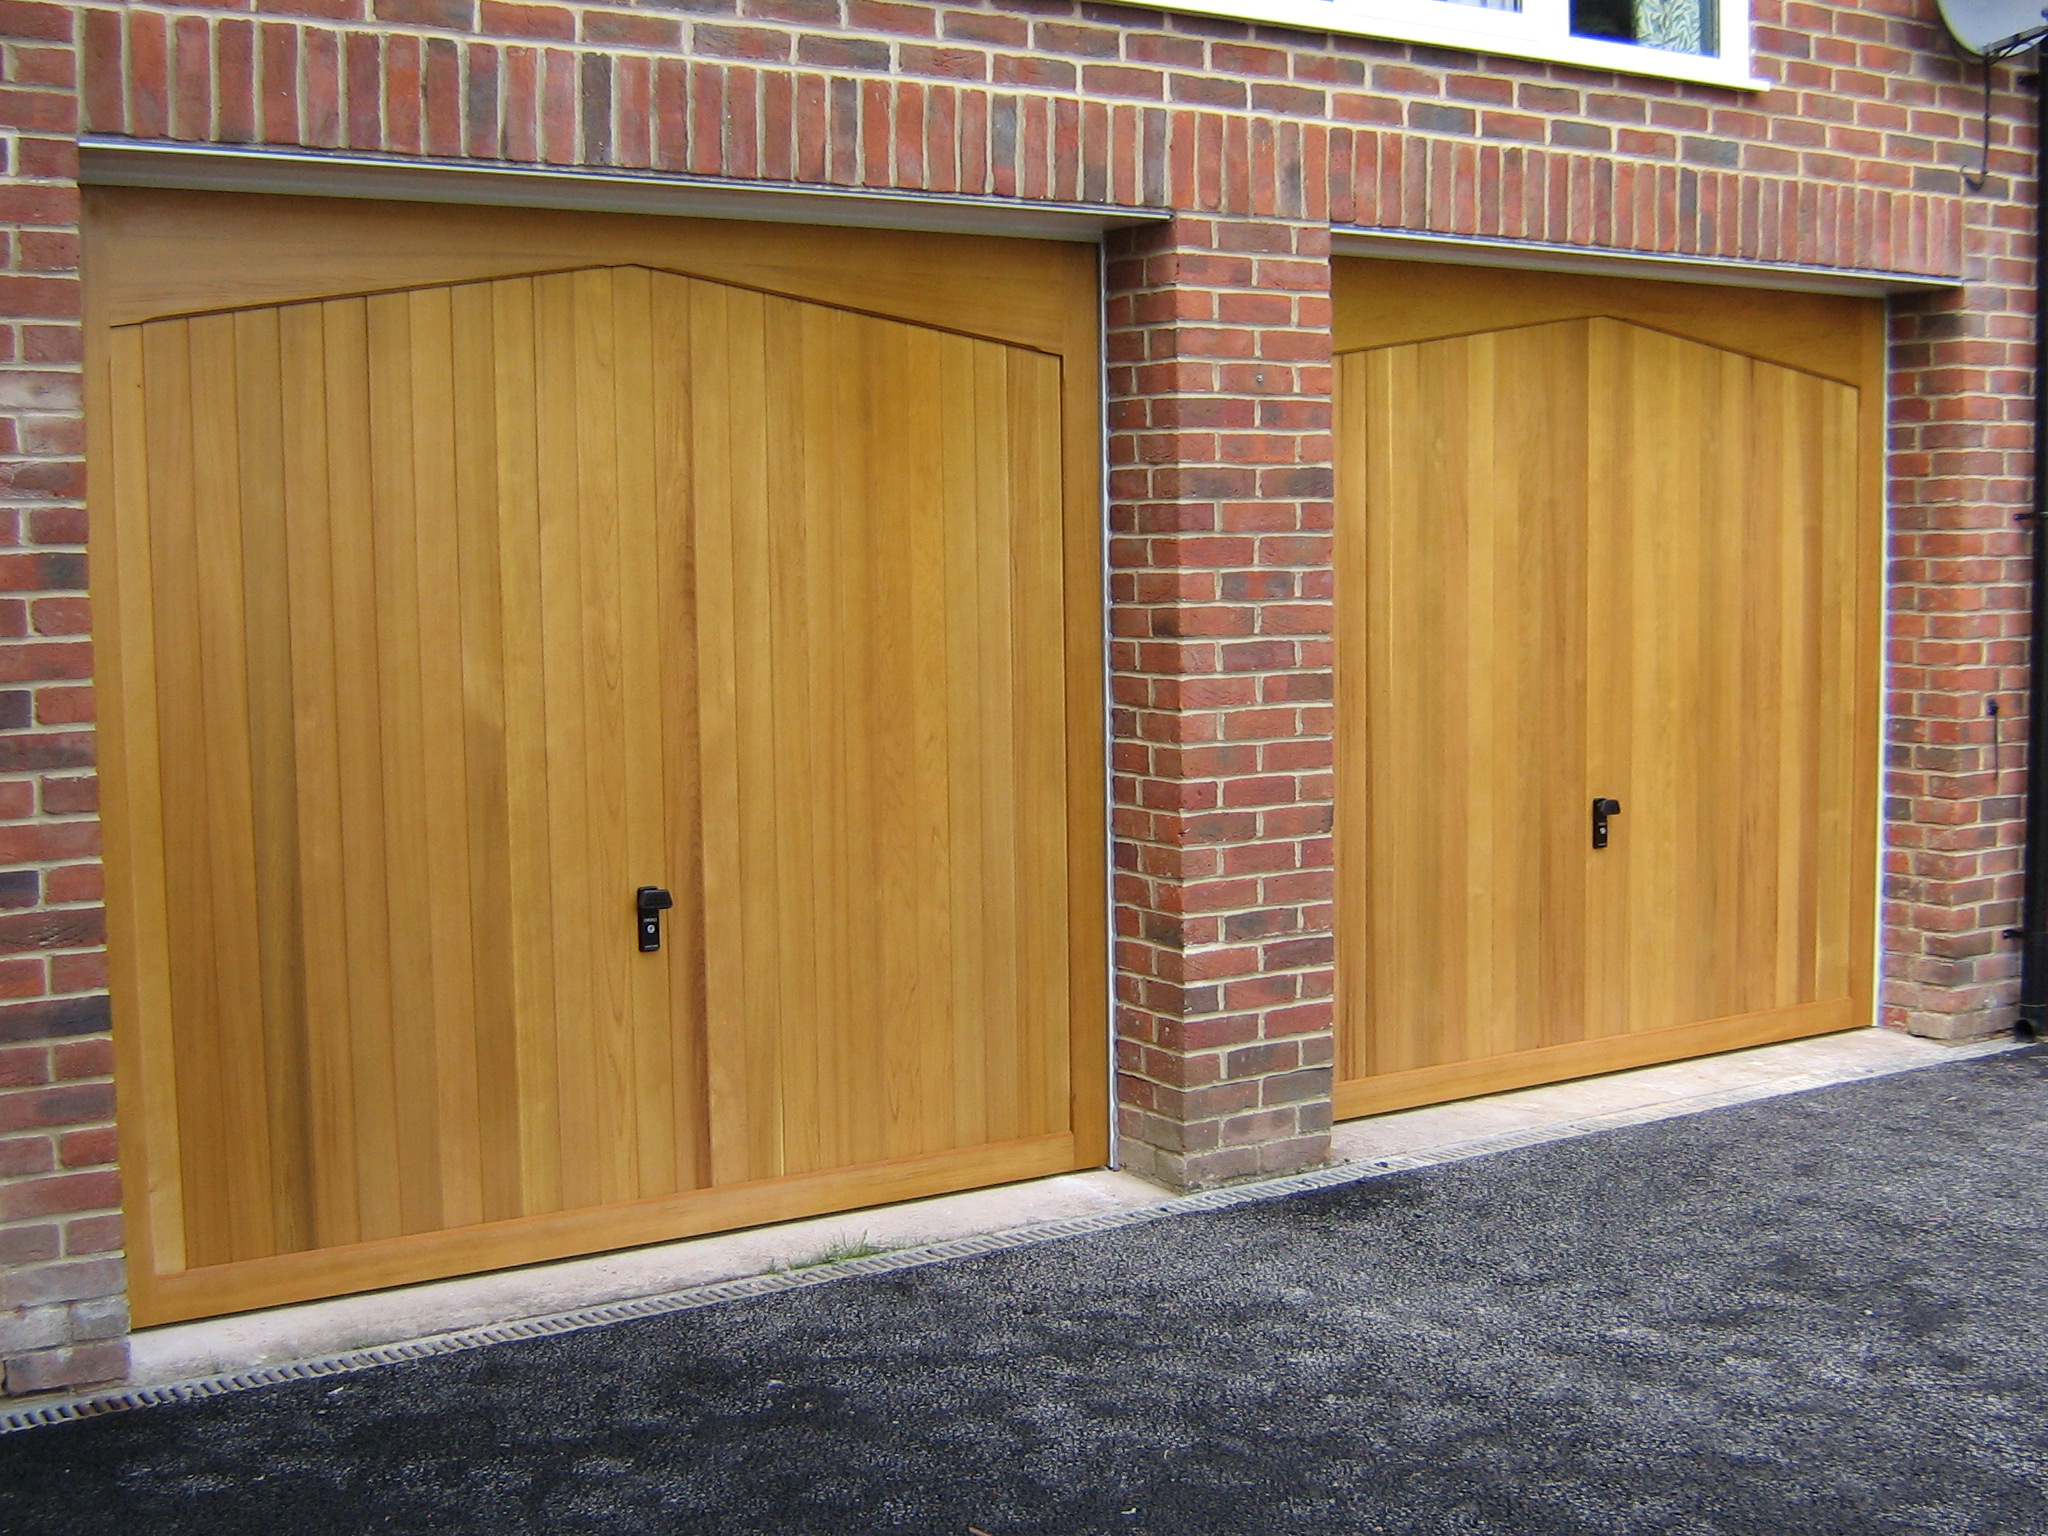 Do Garage Doors Help The Value of Your Home?